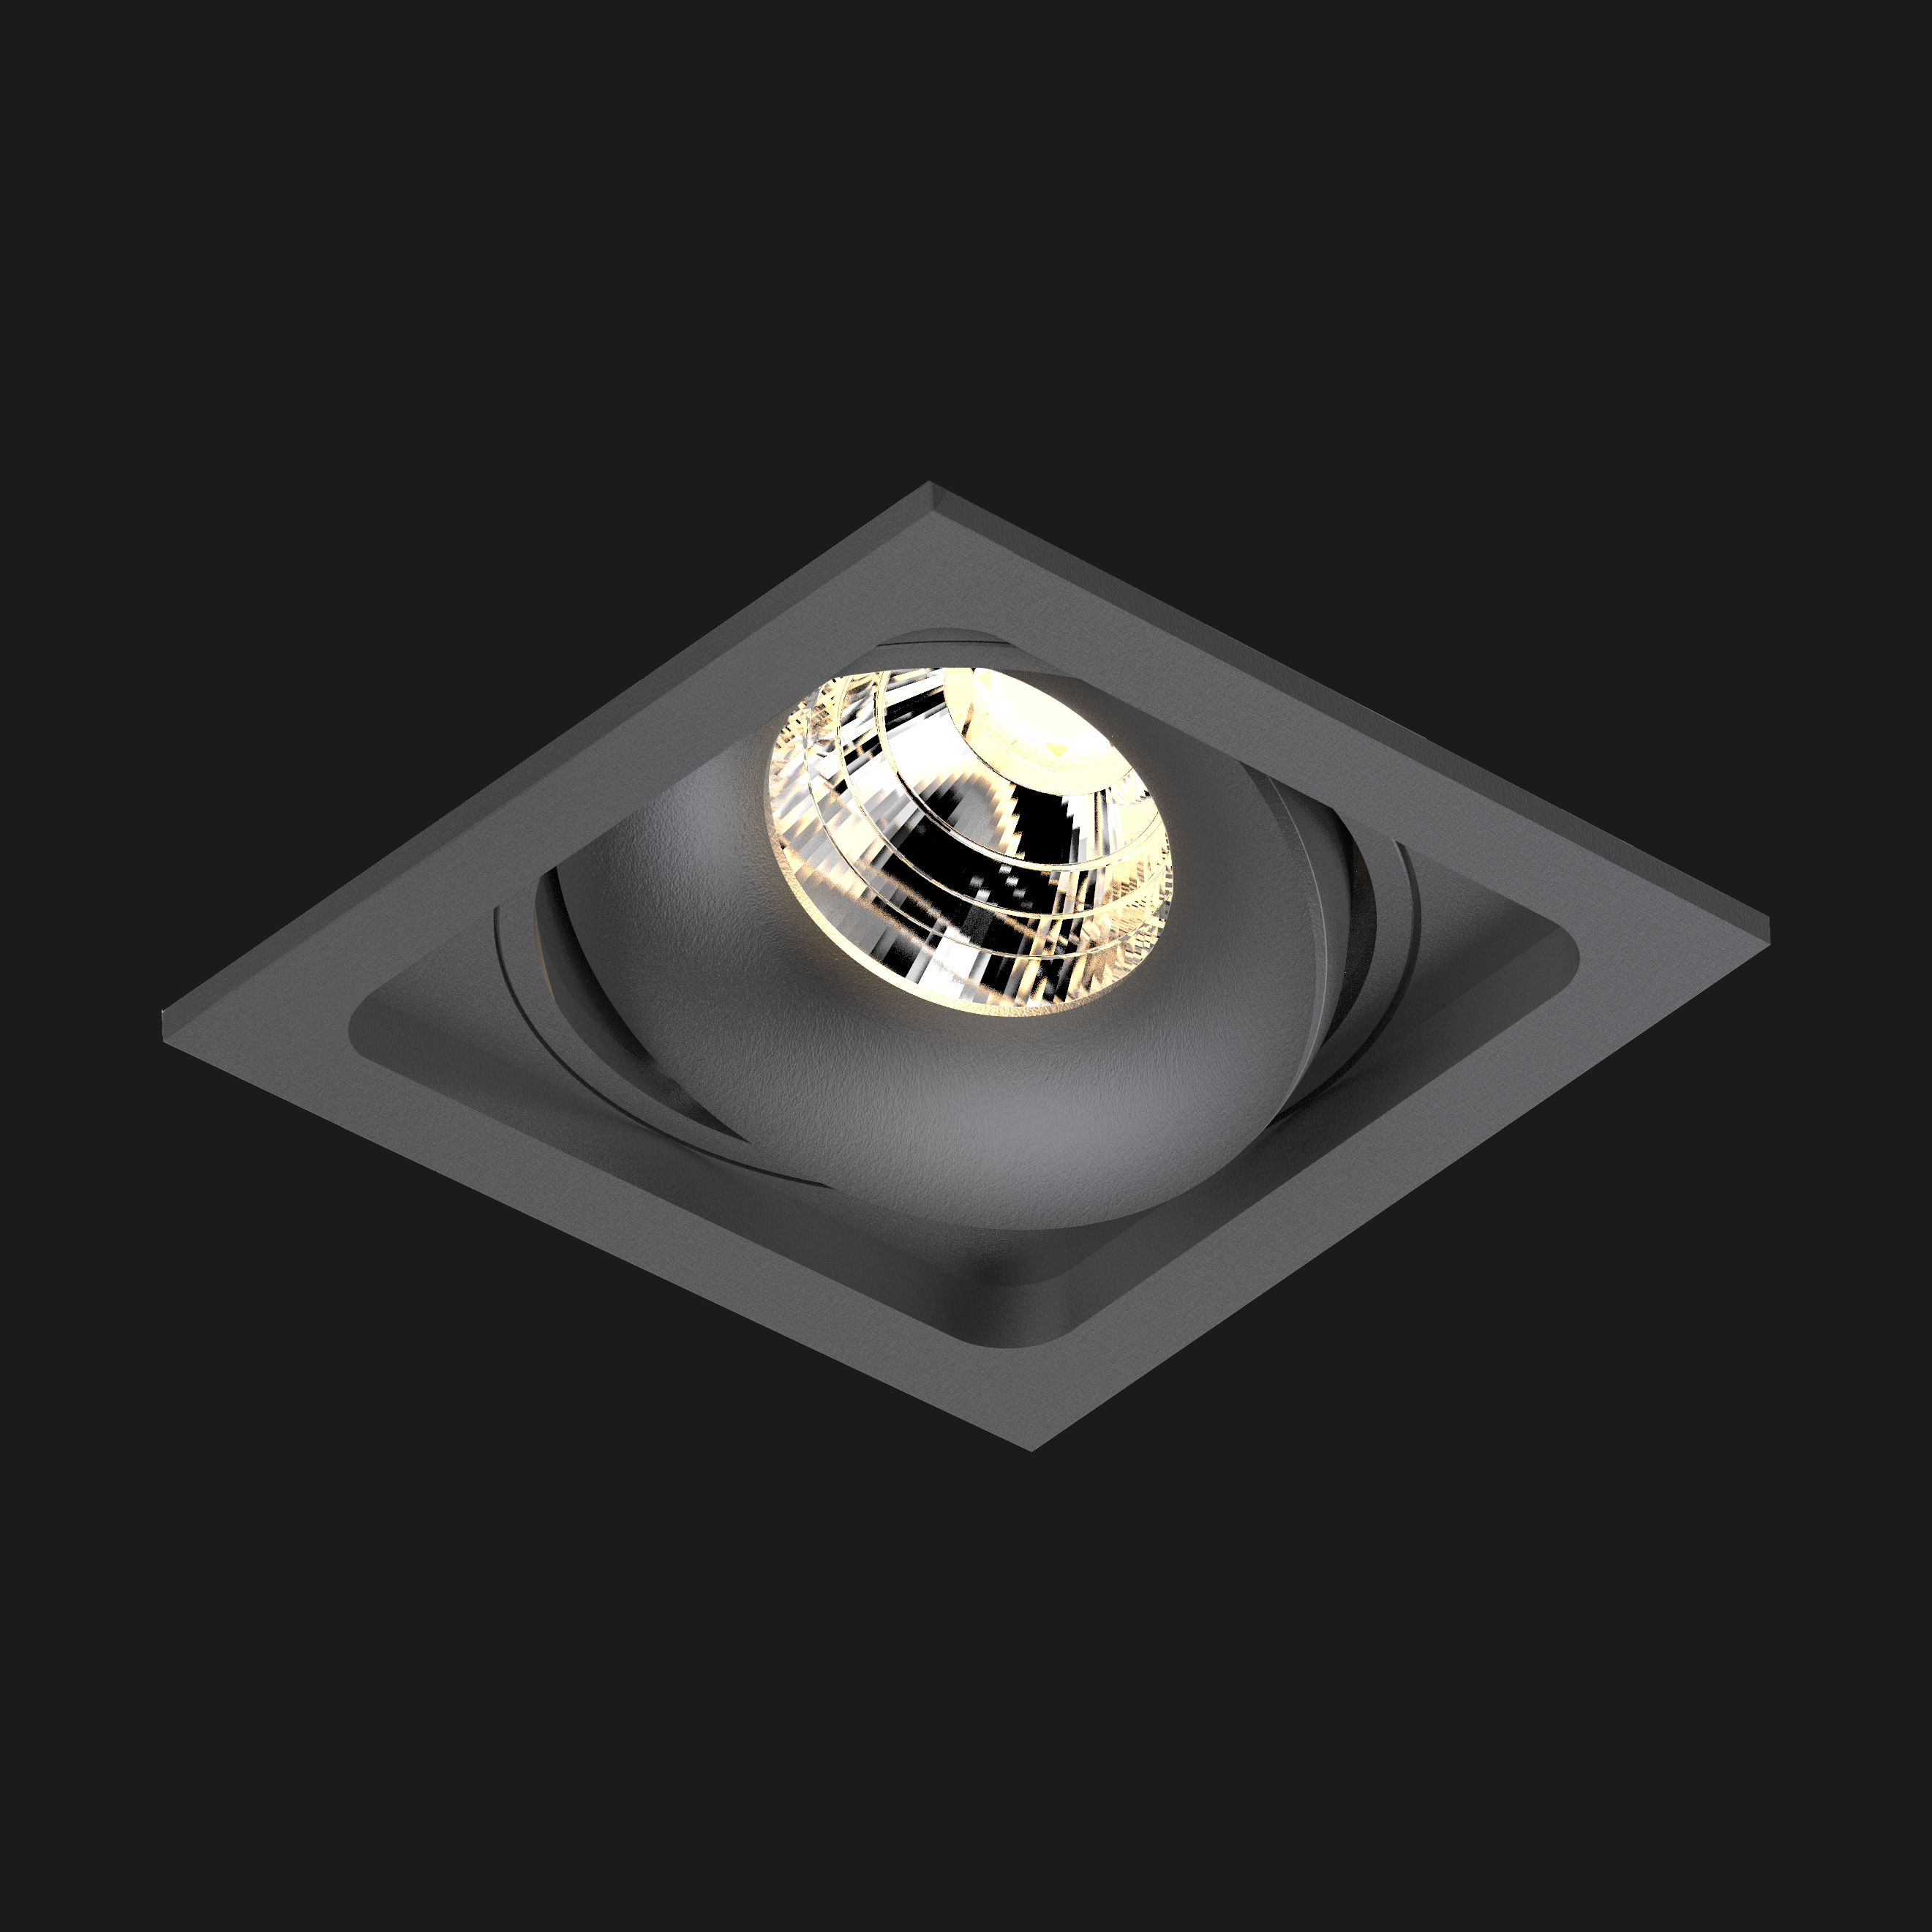 A anthracite led downlight with black background